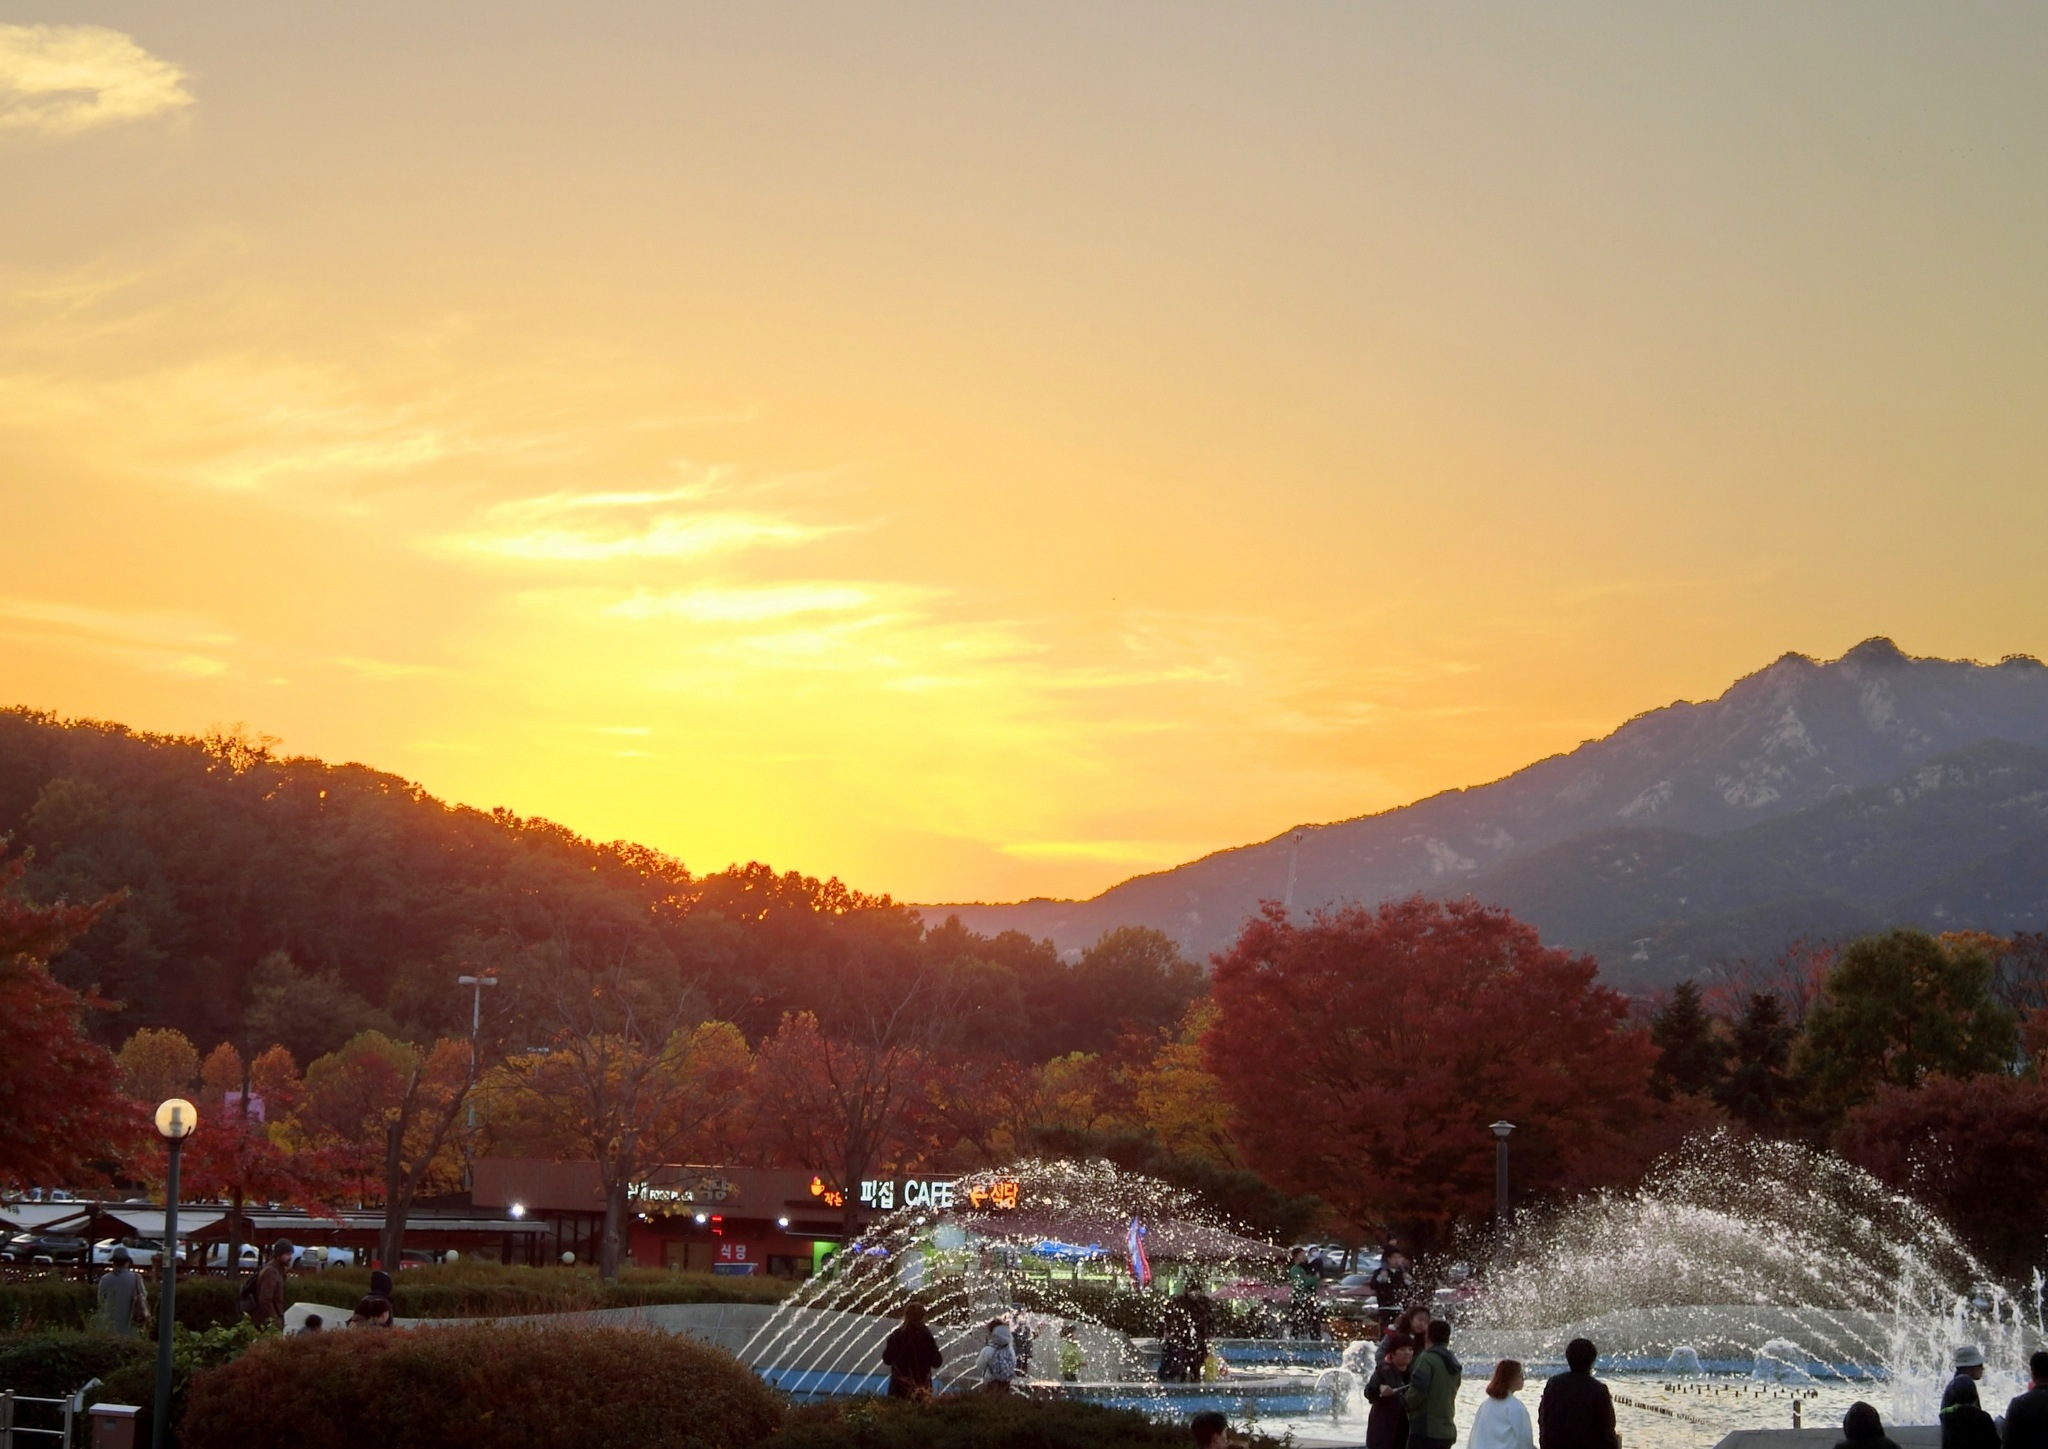 Sunset at Seoul Grand Park by pop88123